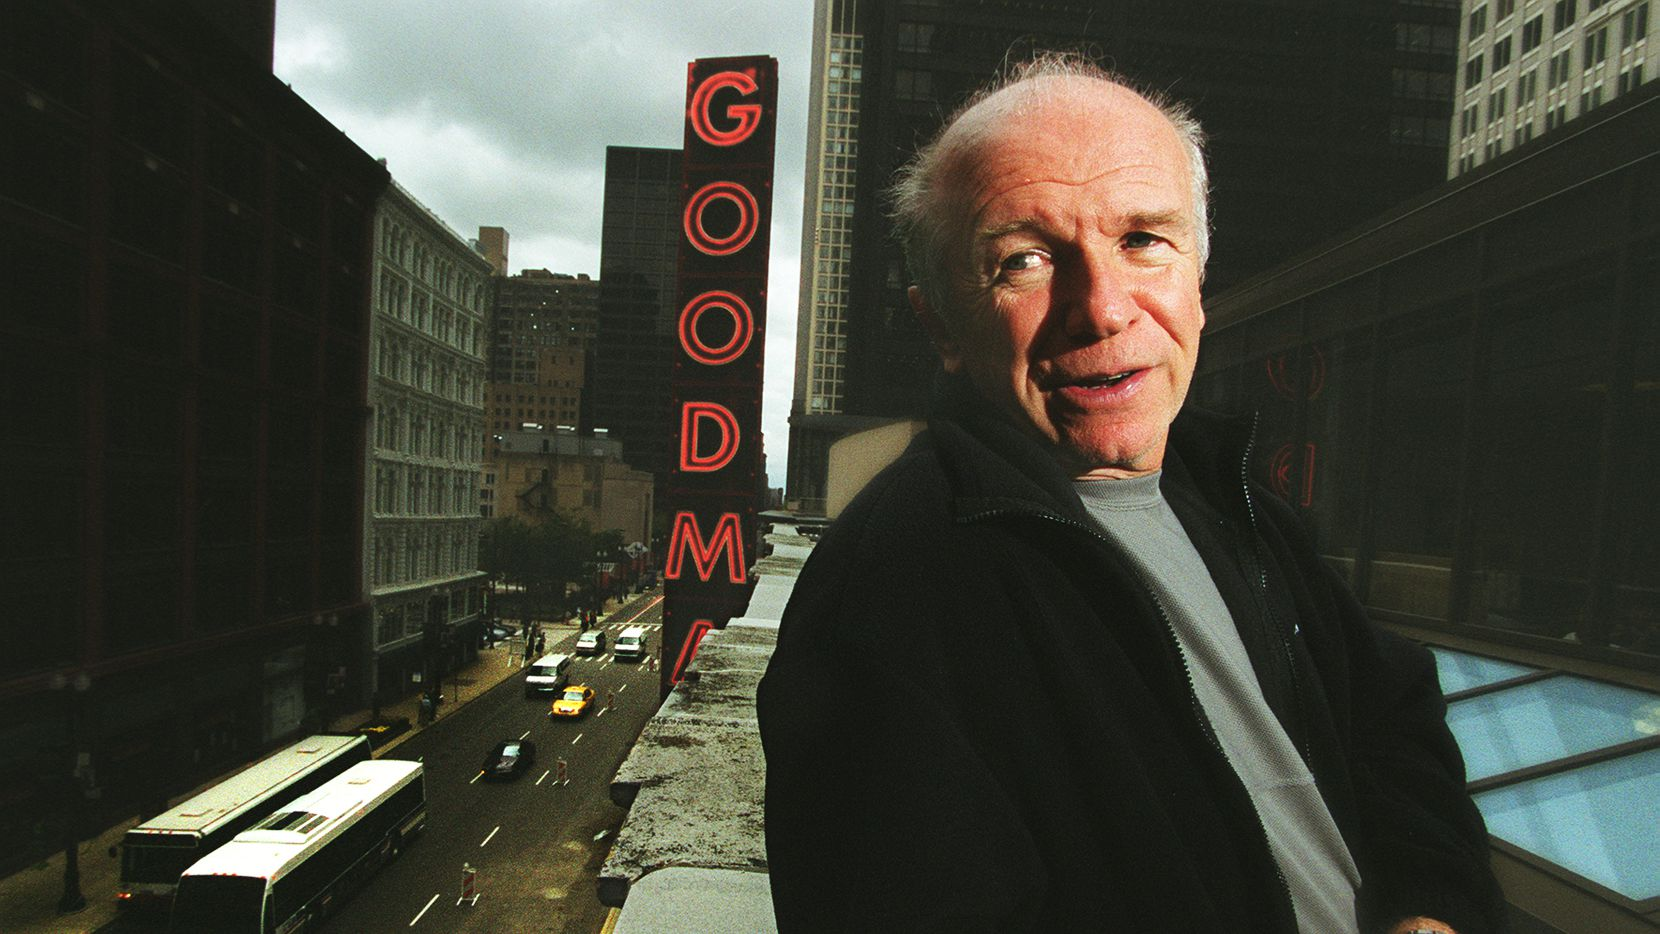 In this 2001 file photo the busy playwright Terrence McNally is quoted as saying:'I don't waste a lot of time... waiting for inspiration. I sit down, and a week or so later I have a draft.' McNally, 81, has died of coronavirus-related complications.